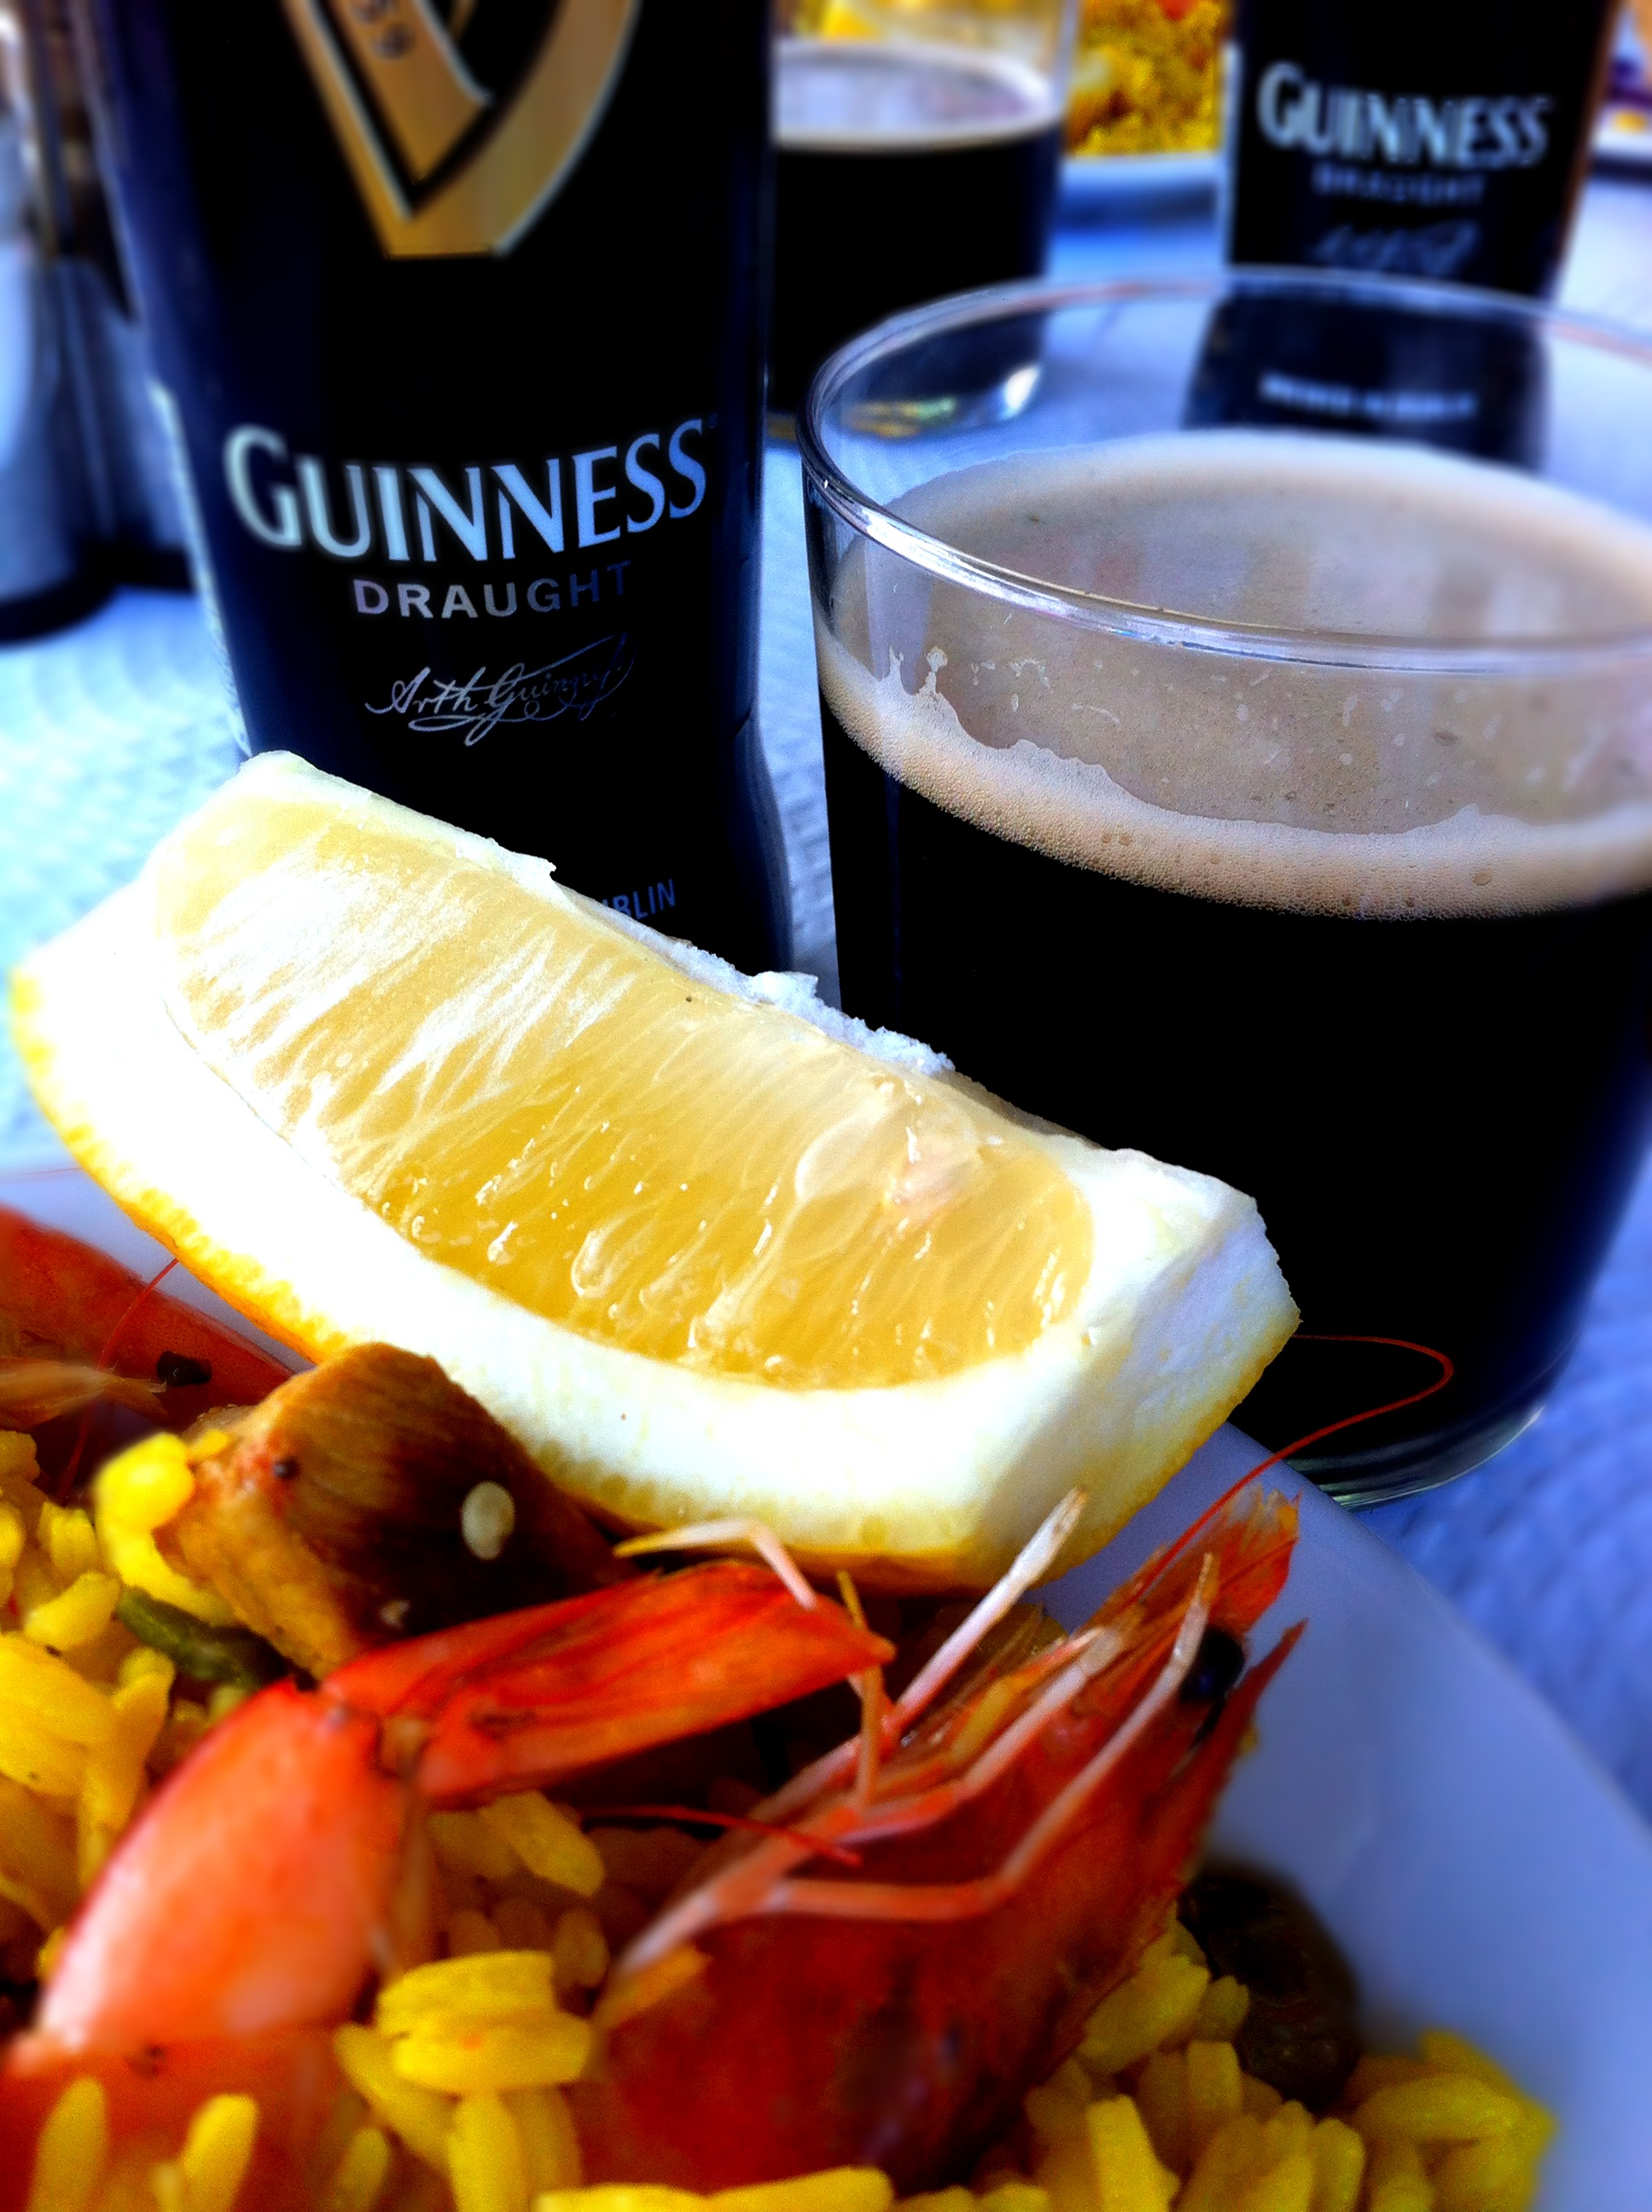 Paella and Guinness lunch St Patrick's Day Nerja andaluciadiary.com